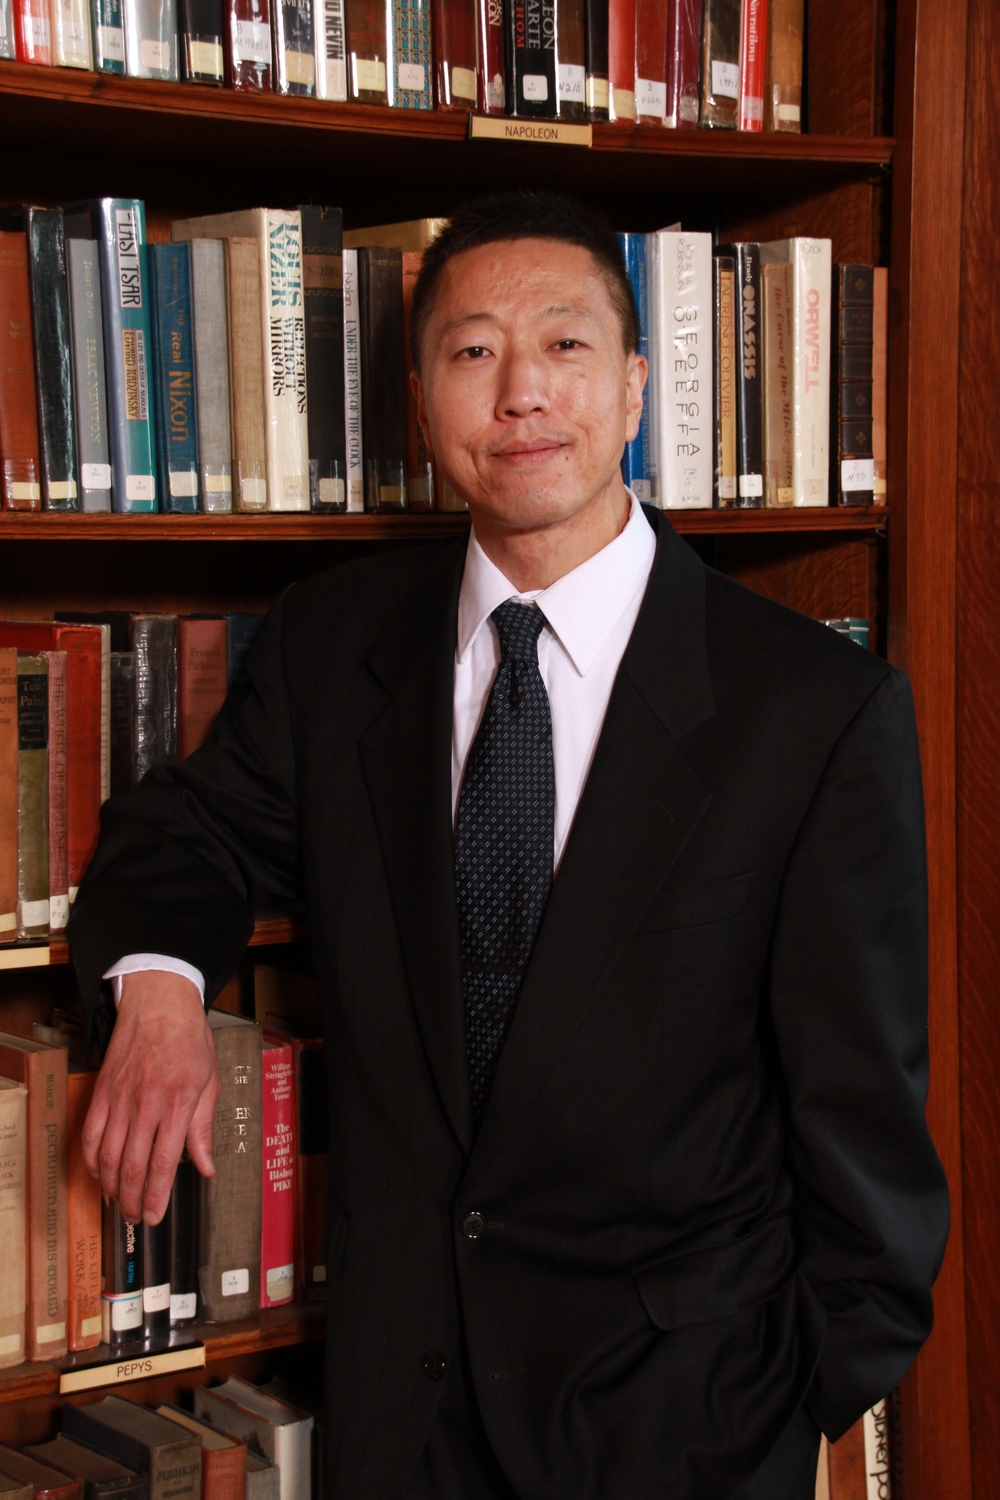 Dan Huh graduated from Bradley University in 1992 with a bachelor's degree in Economics after which he worked in tax and investments for various companies, including Zacks Investment Research, PricewaterhouseCoopers, and H&R Block.  He joined UFAC from 2000 to 2008, taking a few years to obtain necessary coursework in preparation for the CPA exam and also working at Northwestern Mutual, returning to the team in 2013.  He is currently licensed as a Certified Financial Planner™ and a CPA candidate.